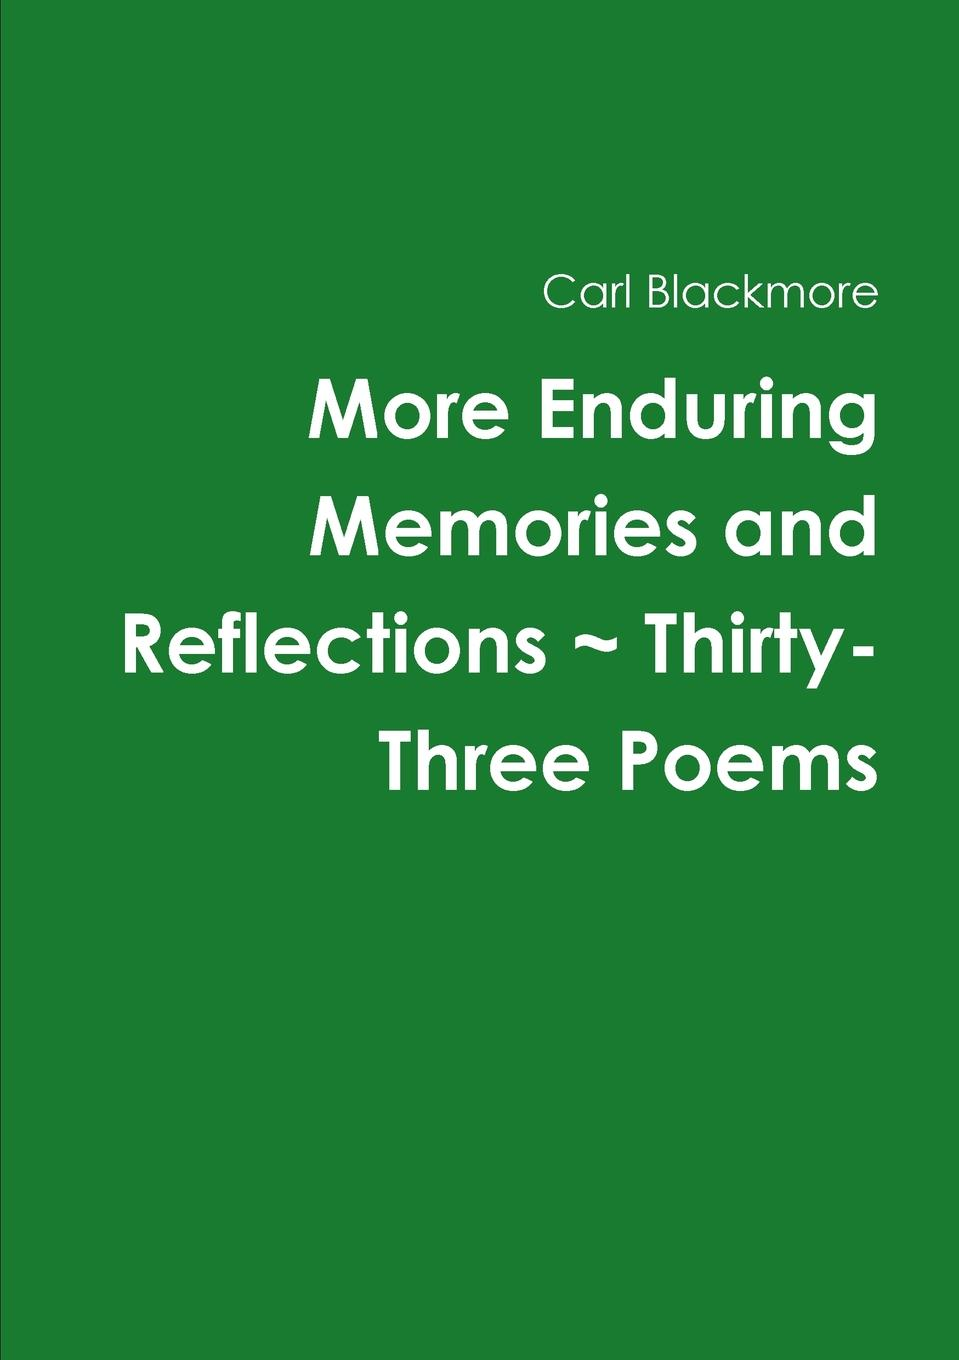 Carl Blackmore More Enduring Memories and Reflections . Thirty-Three Poems horstmann carl the minor poems of the vernon m s